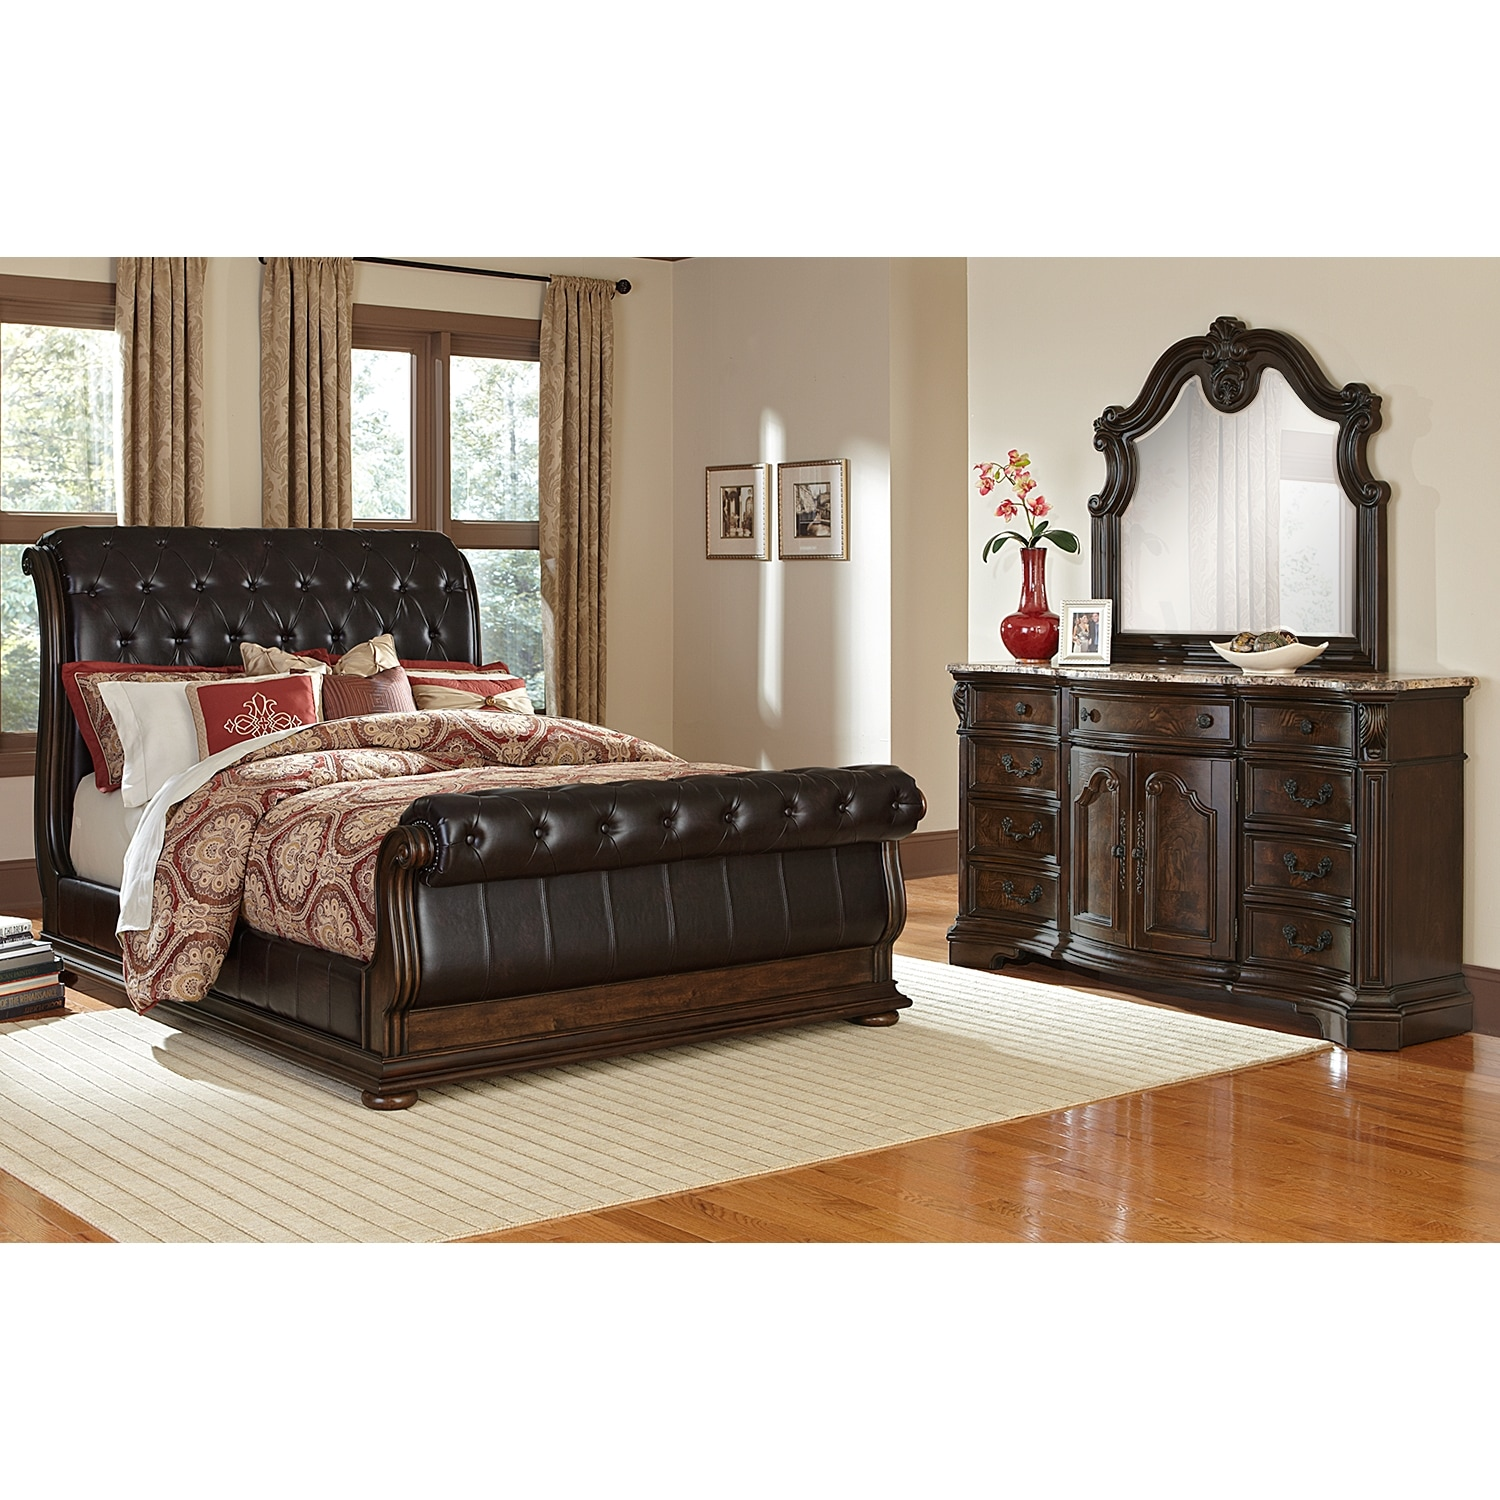 Monticello 5-Piece Queen Sleigh Bedroom Set - Pecan | American ...